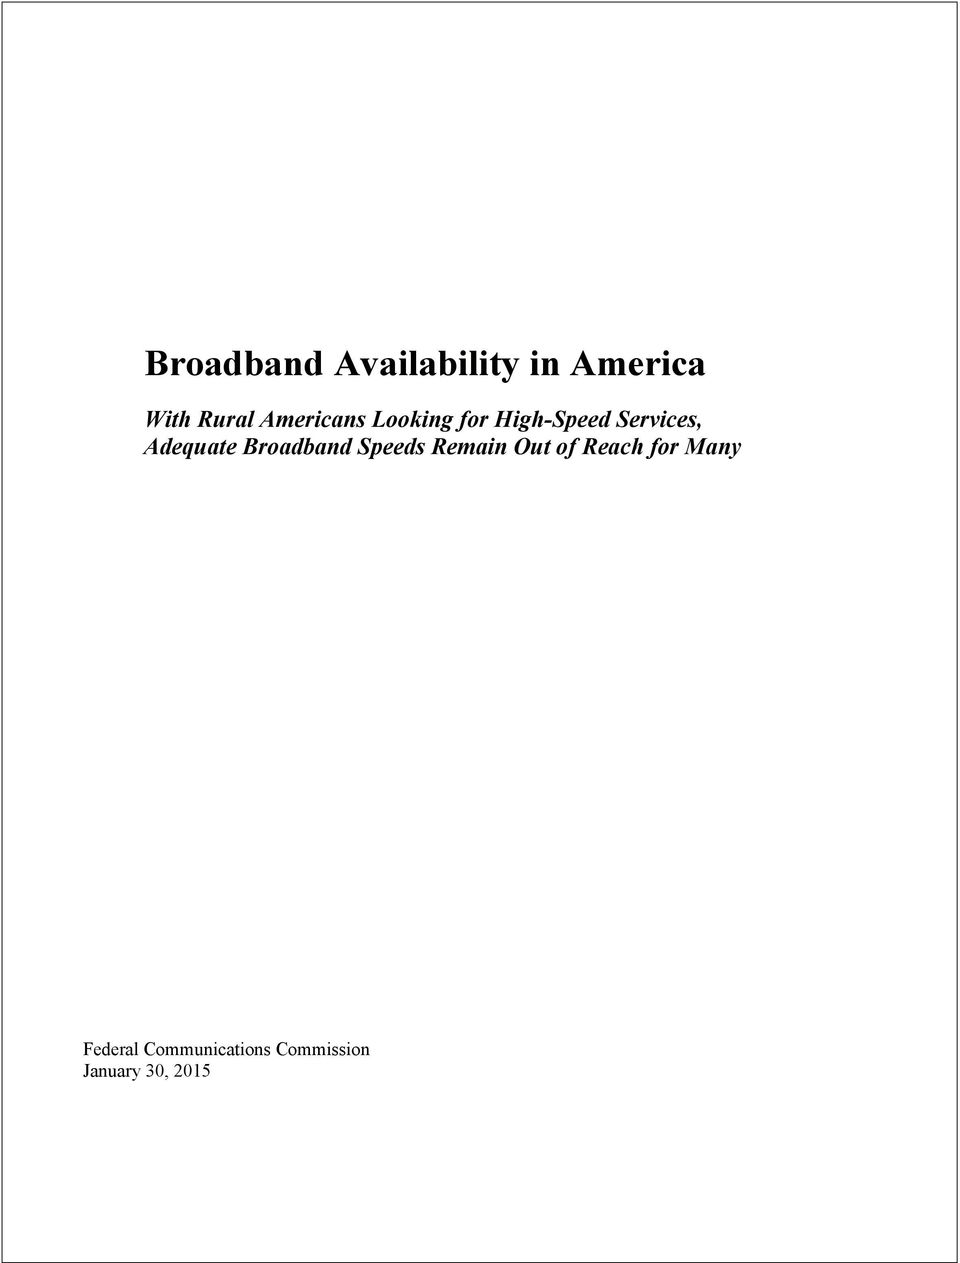 Adequate Broadband Speeds Remain Out of Reach